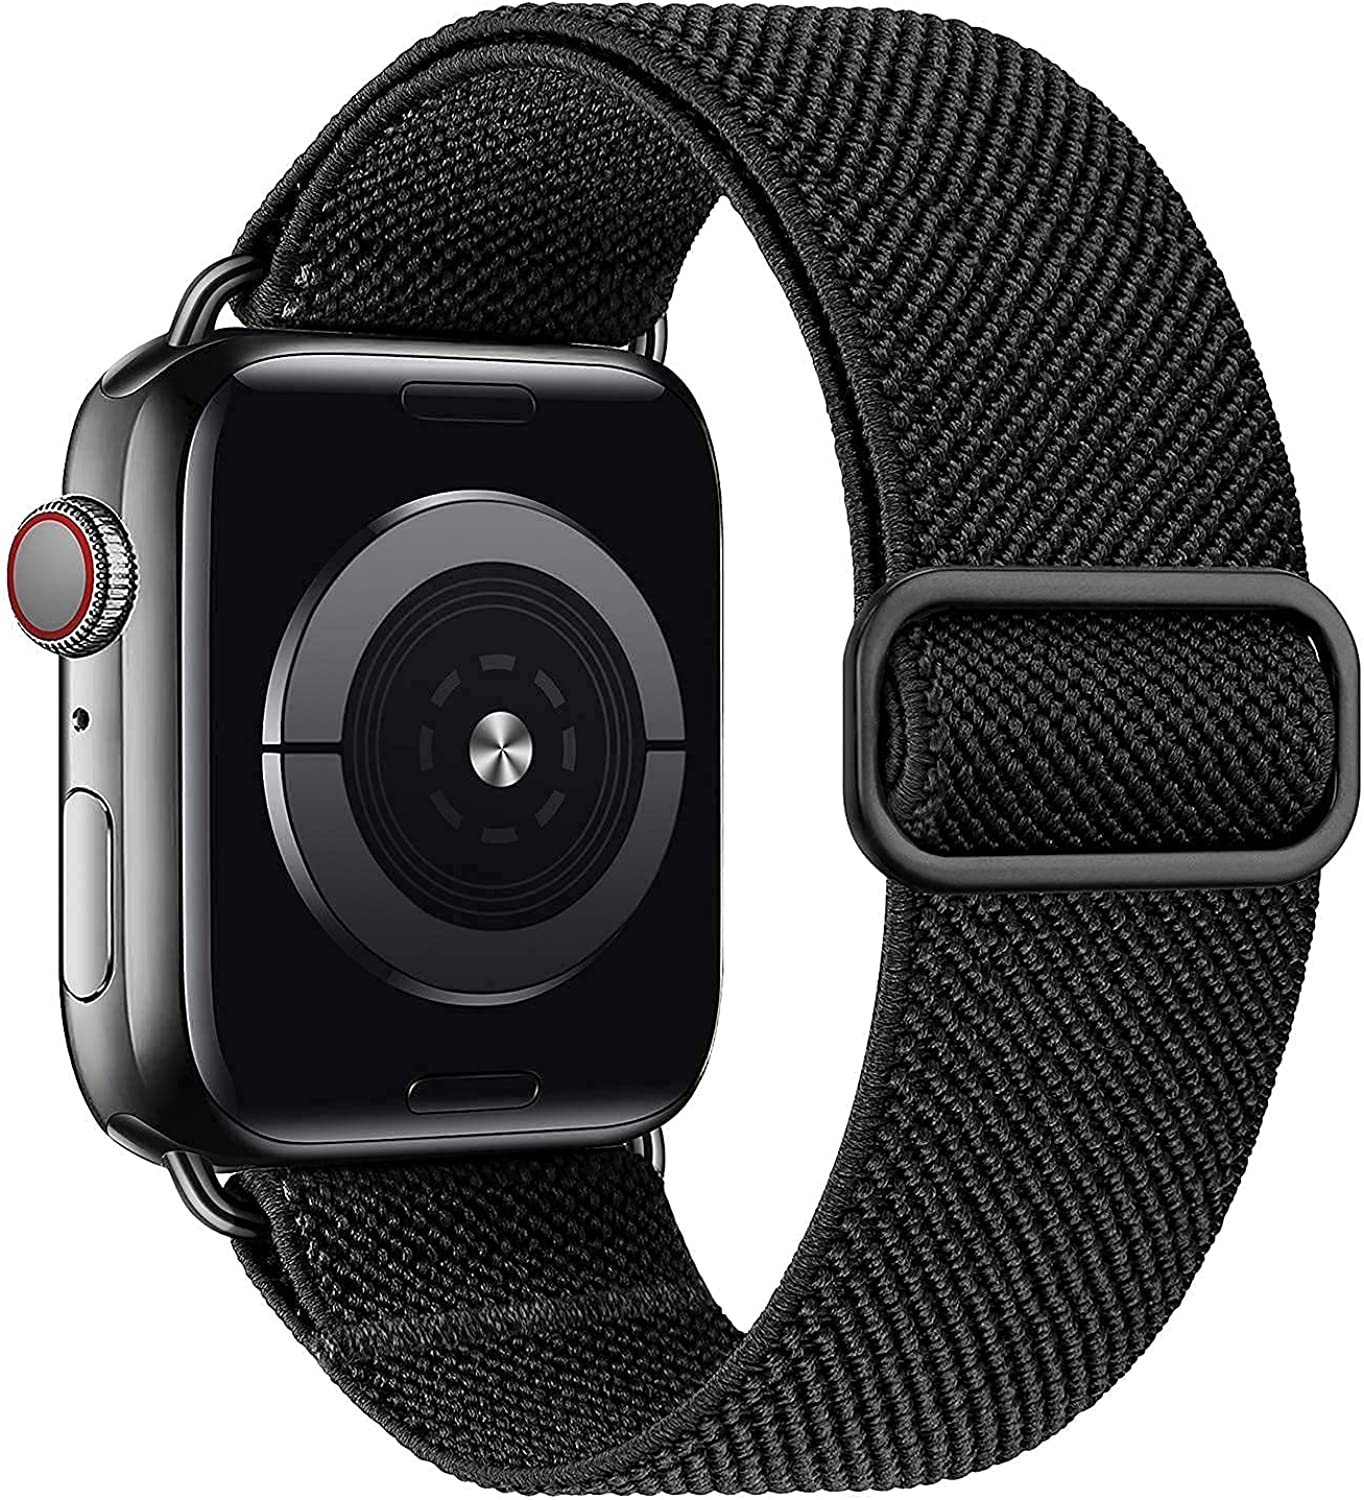 MEULOT Stretchy Braided Solo Loop Band Compatible with Apple Watch Band 42mm 44mm Adjustable Nylon Elastic Sport Women Men Strap Compatible with iWatch Series 6/5/4/3/2/1 SE Black 42/44S